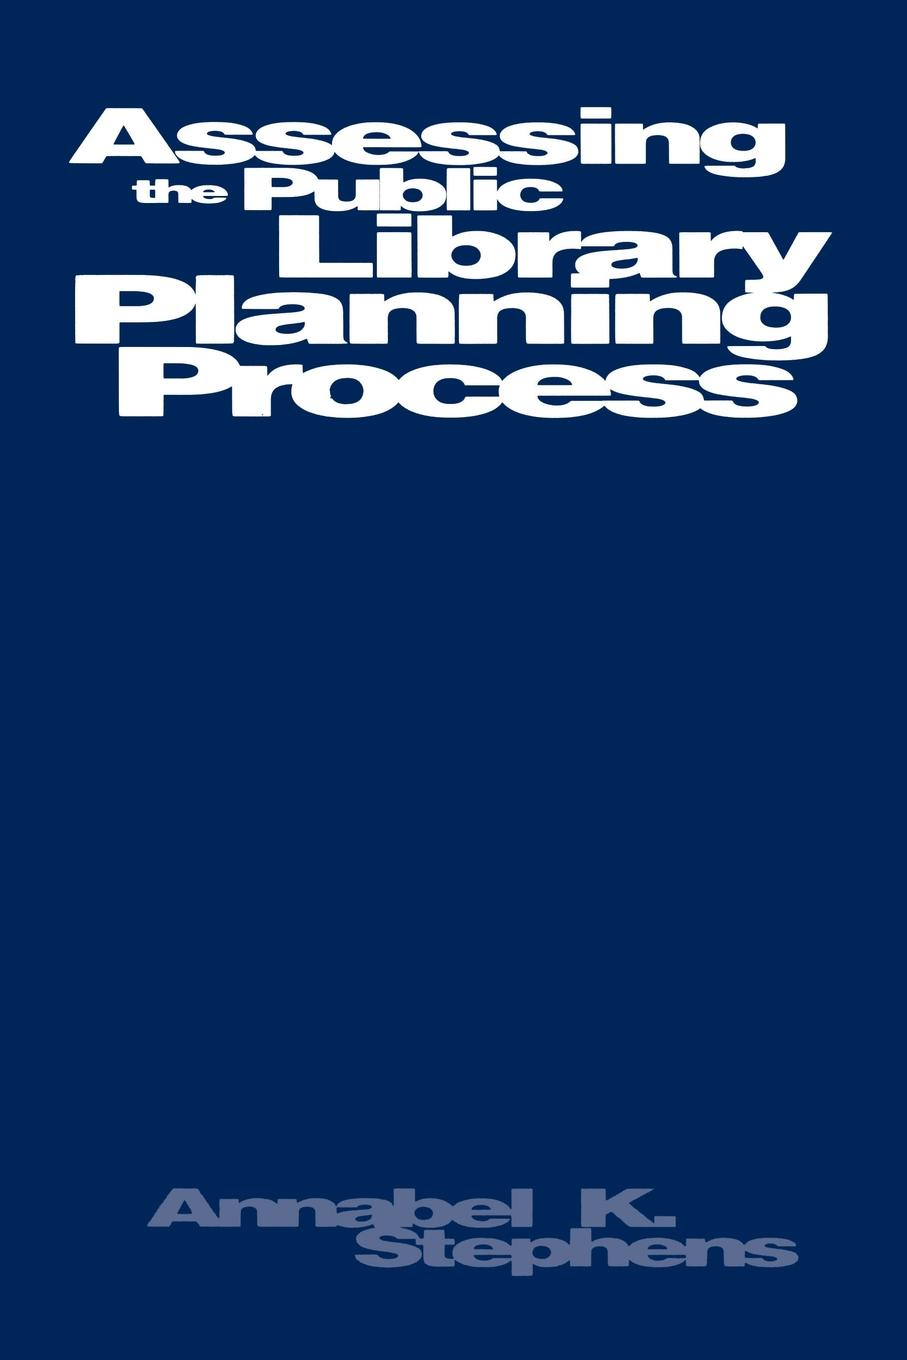 Annabel K. Stephens, Unknown Assessing Public Library Planning Process assessing creativity